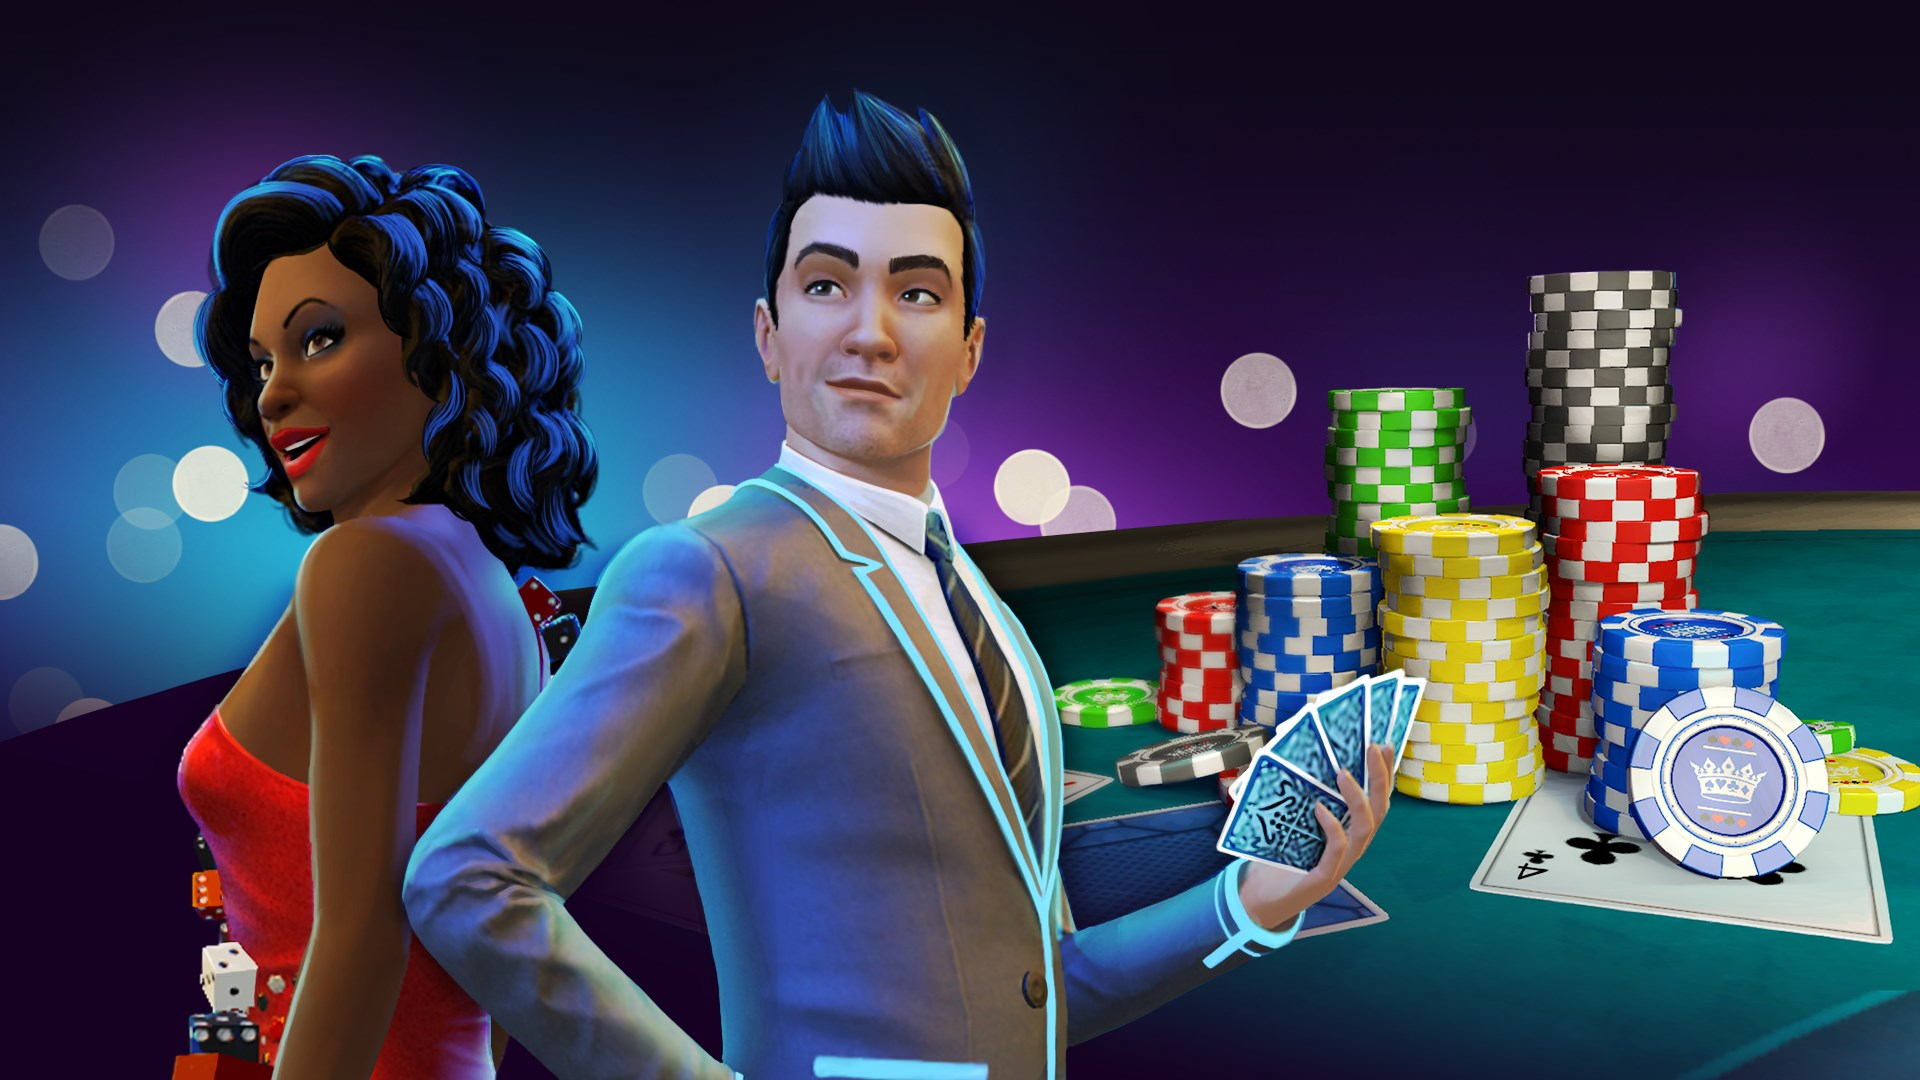 Get The Four Kings Casino and Slots - Microsoft Store